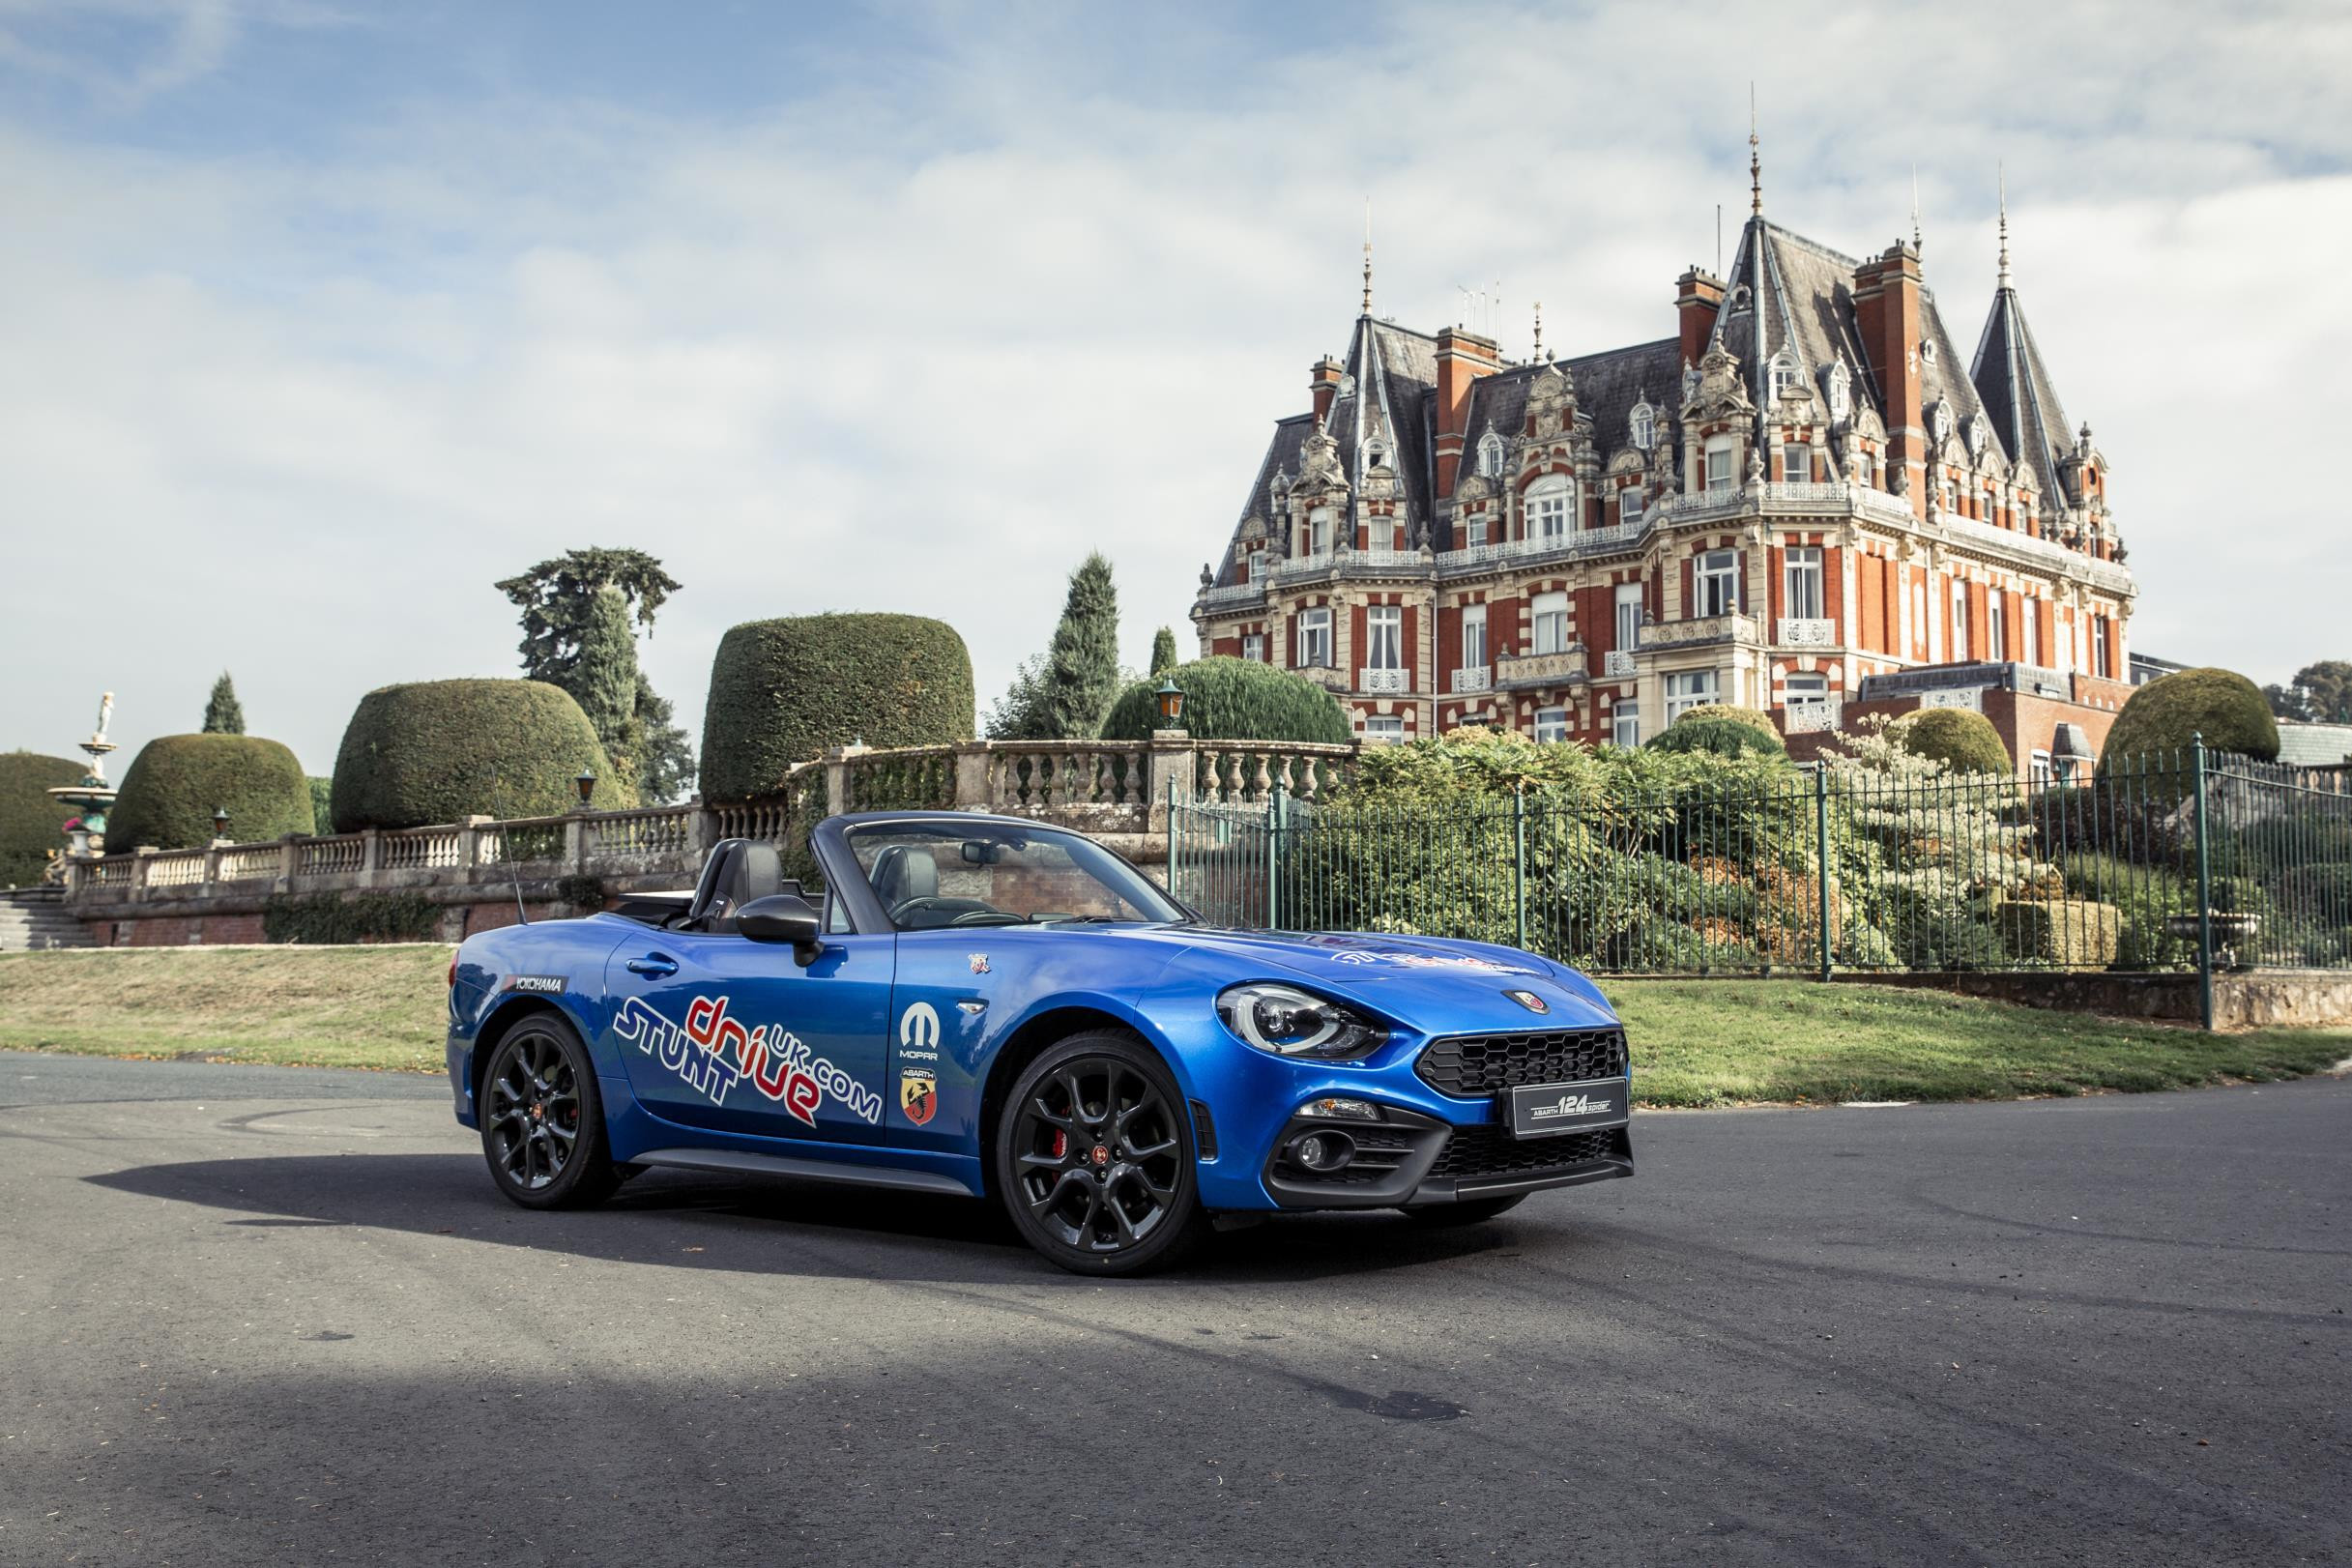 Abarth 124 Spider at the Chateau Impney Hill Climb